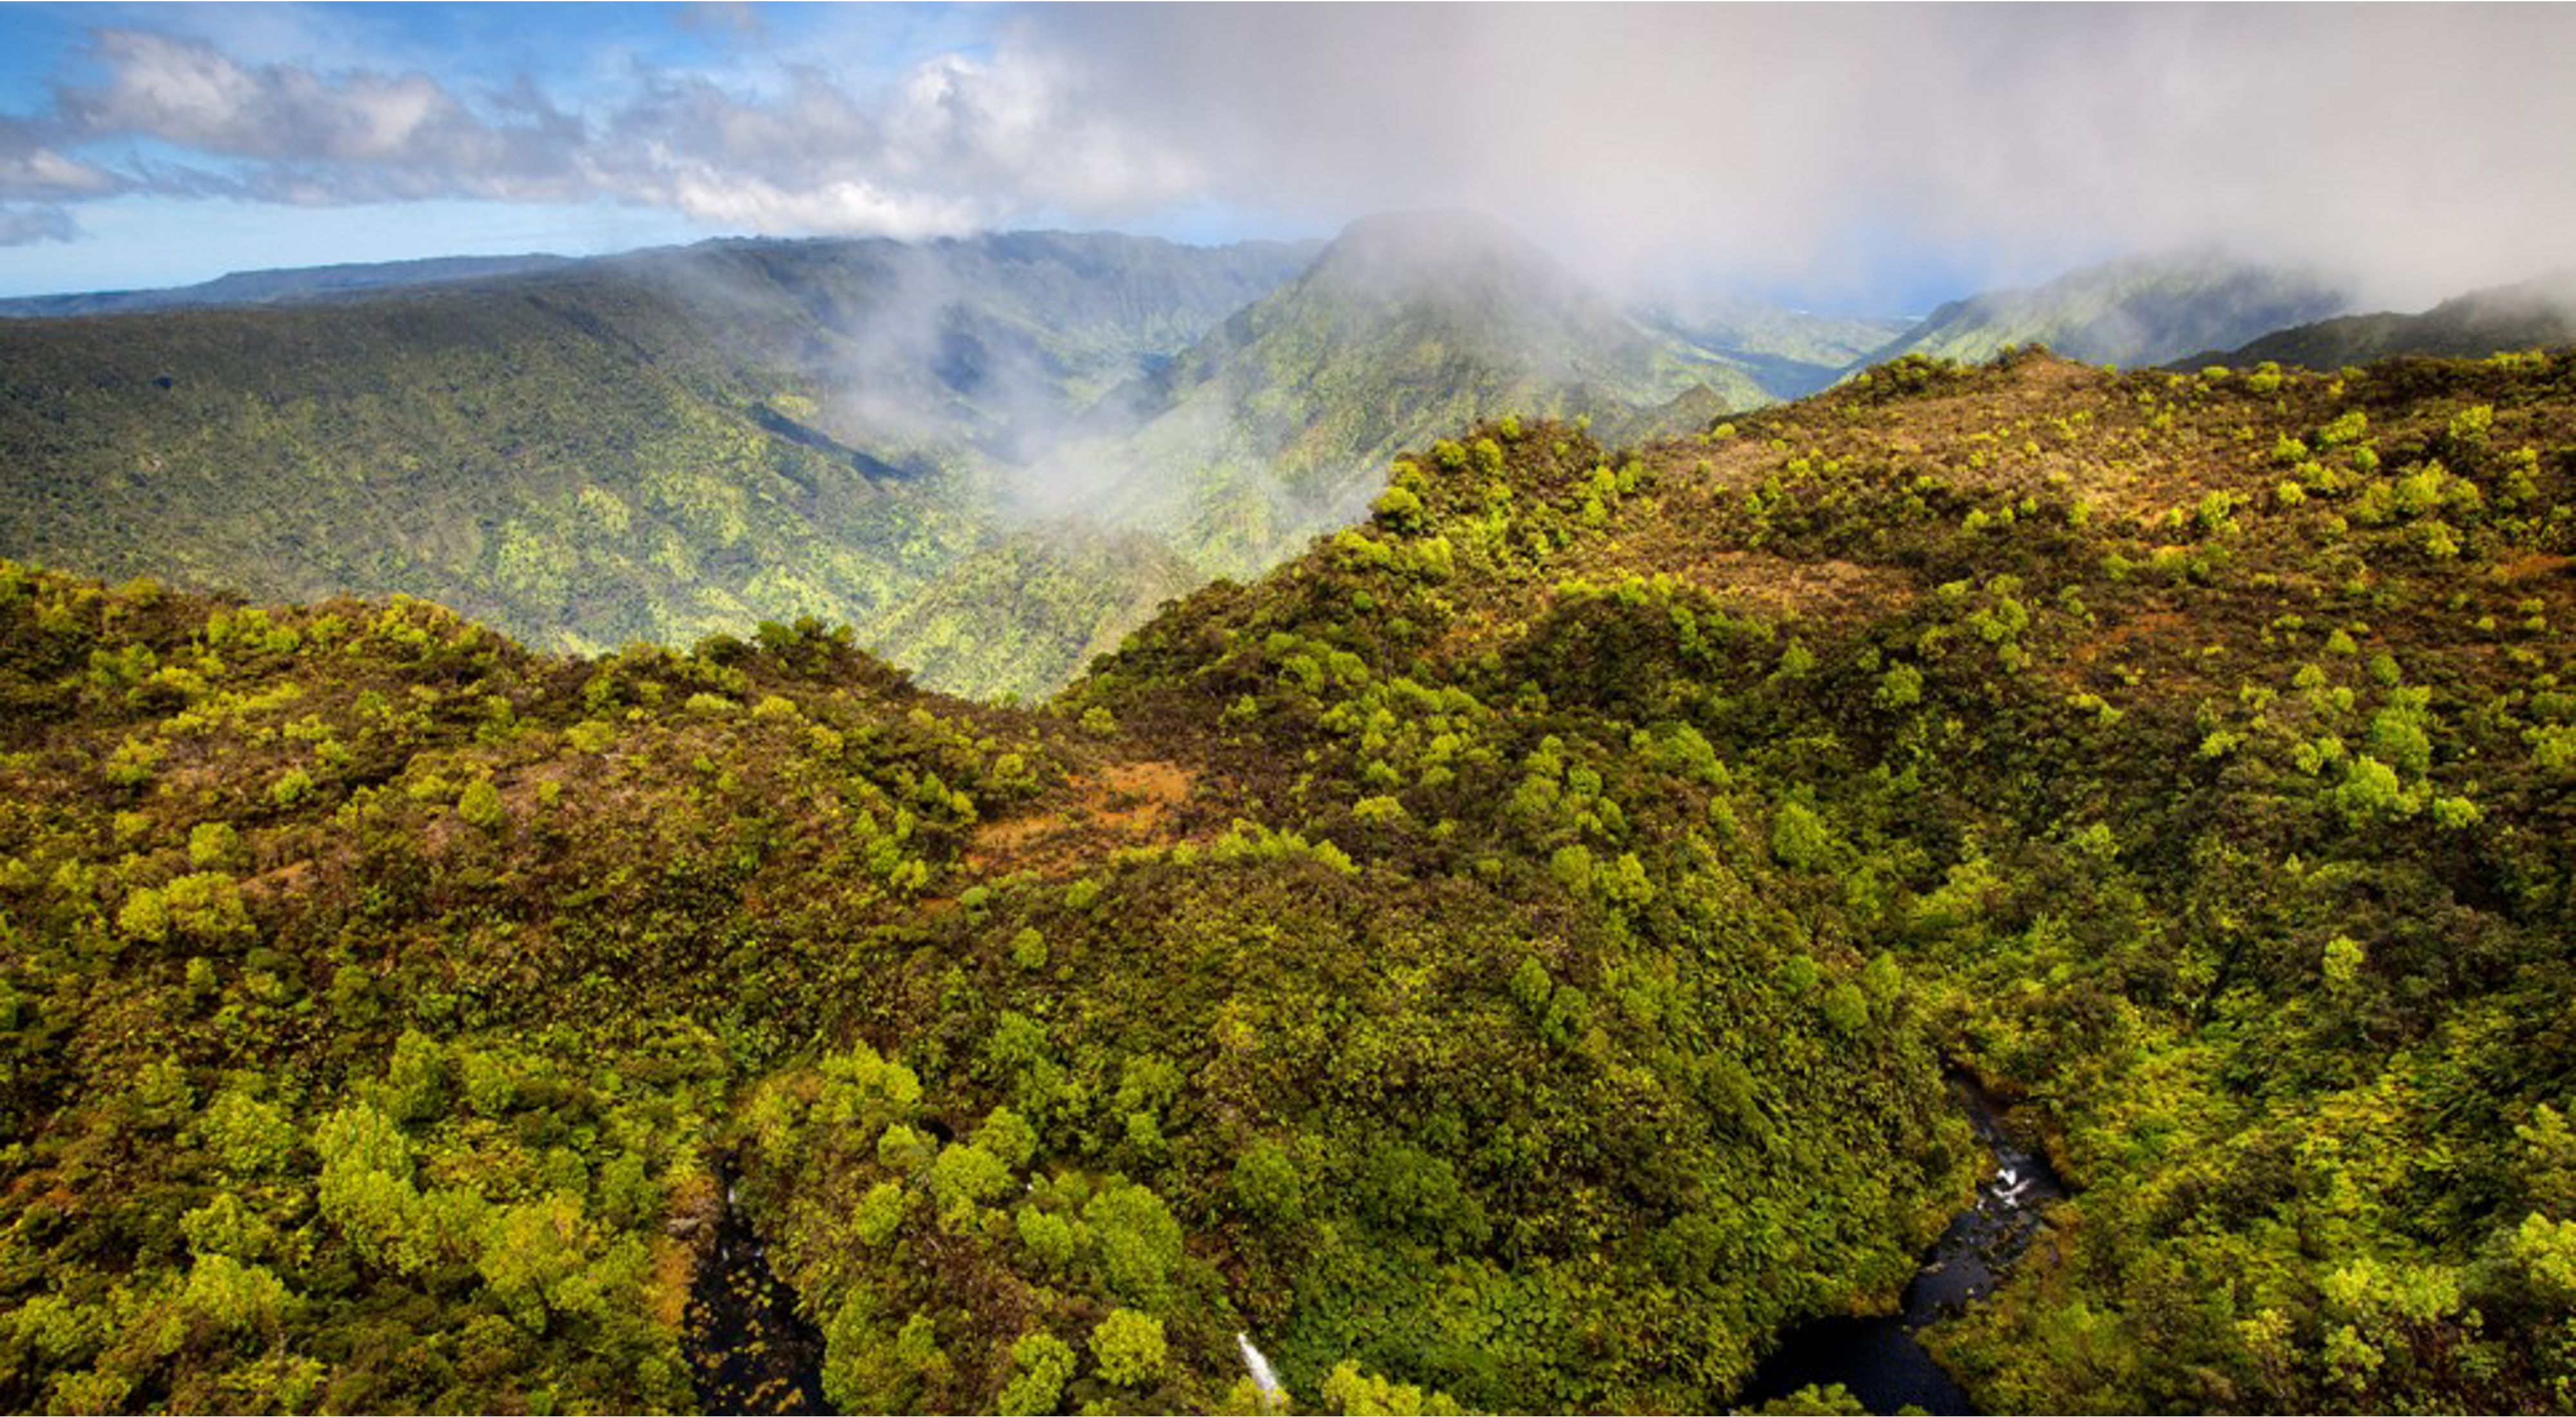 Lush, mixtures of green vegetated mountains with clouds misting the sky in the background.